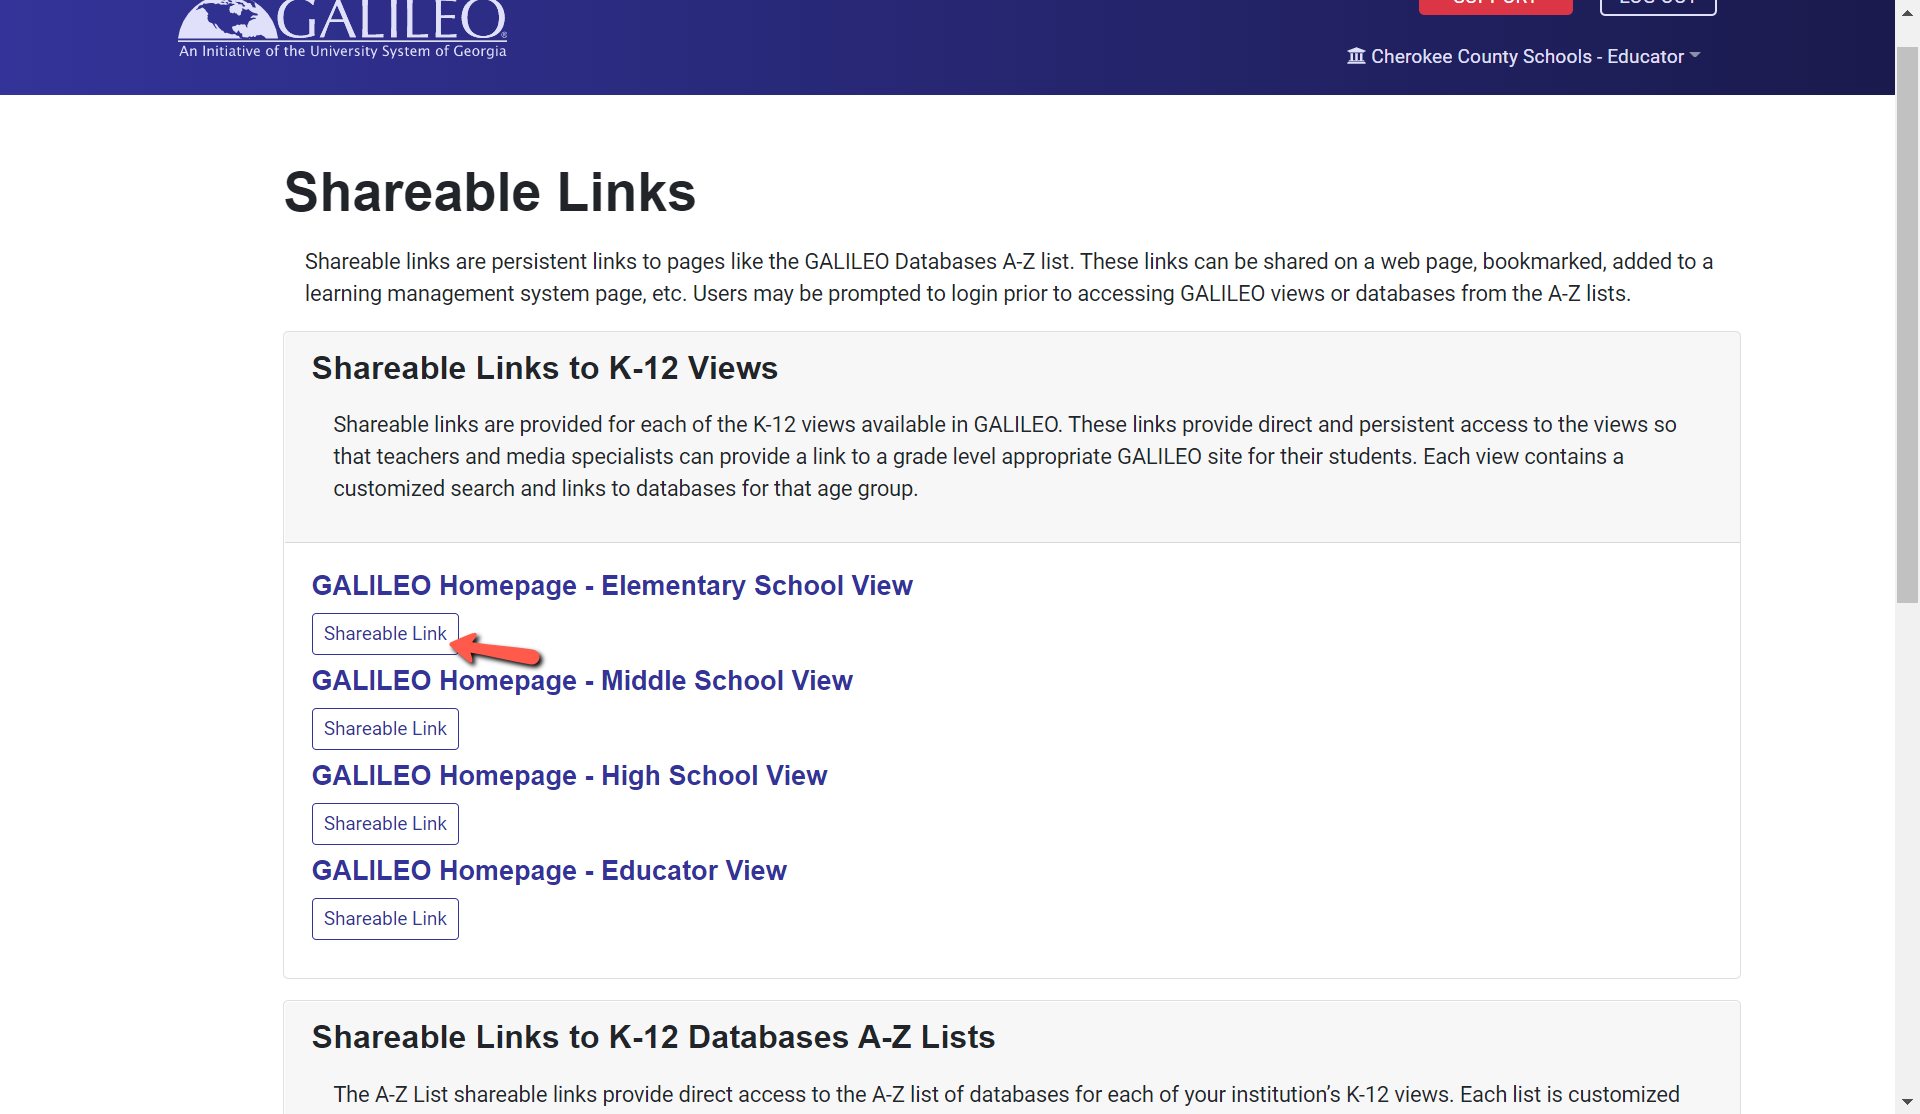 shareable link button